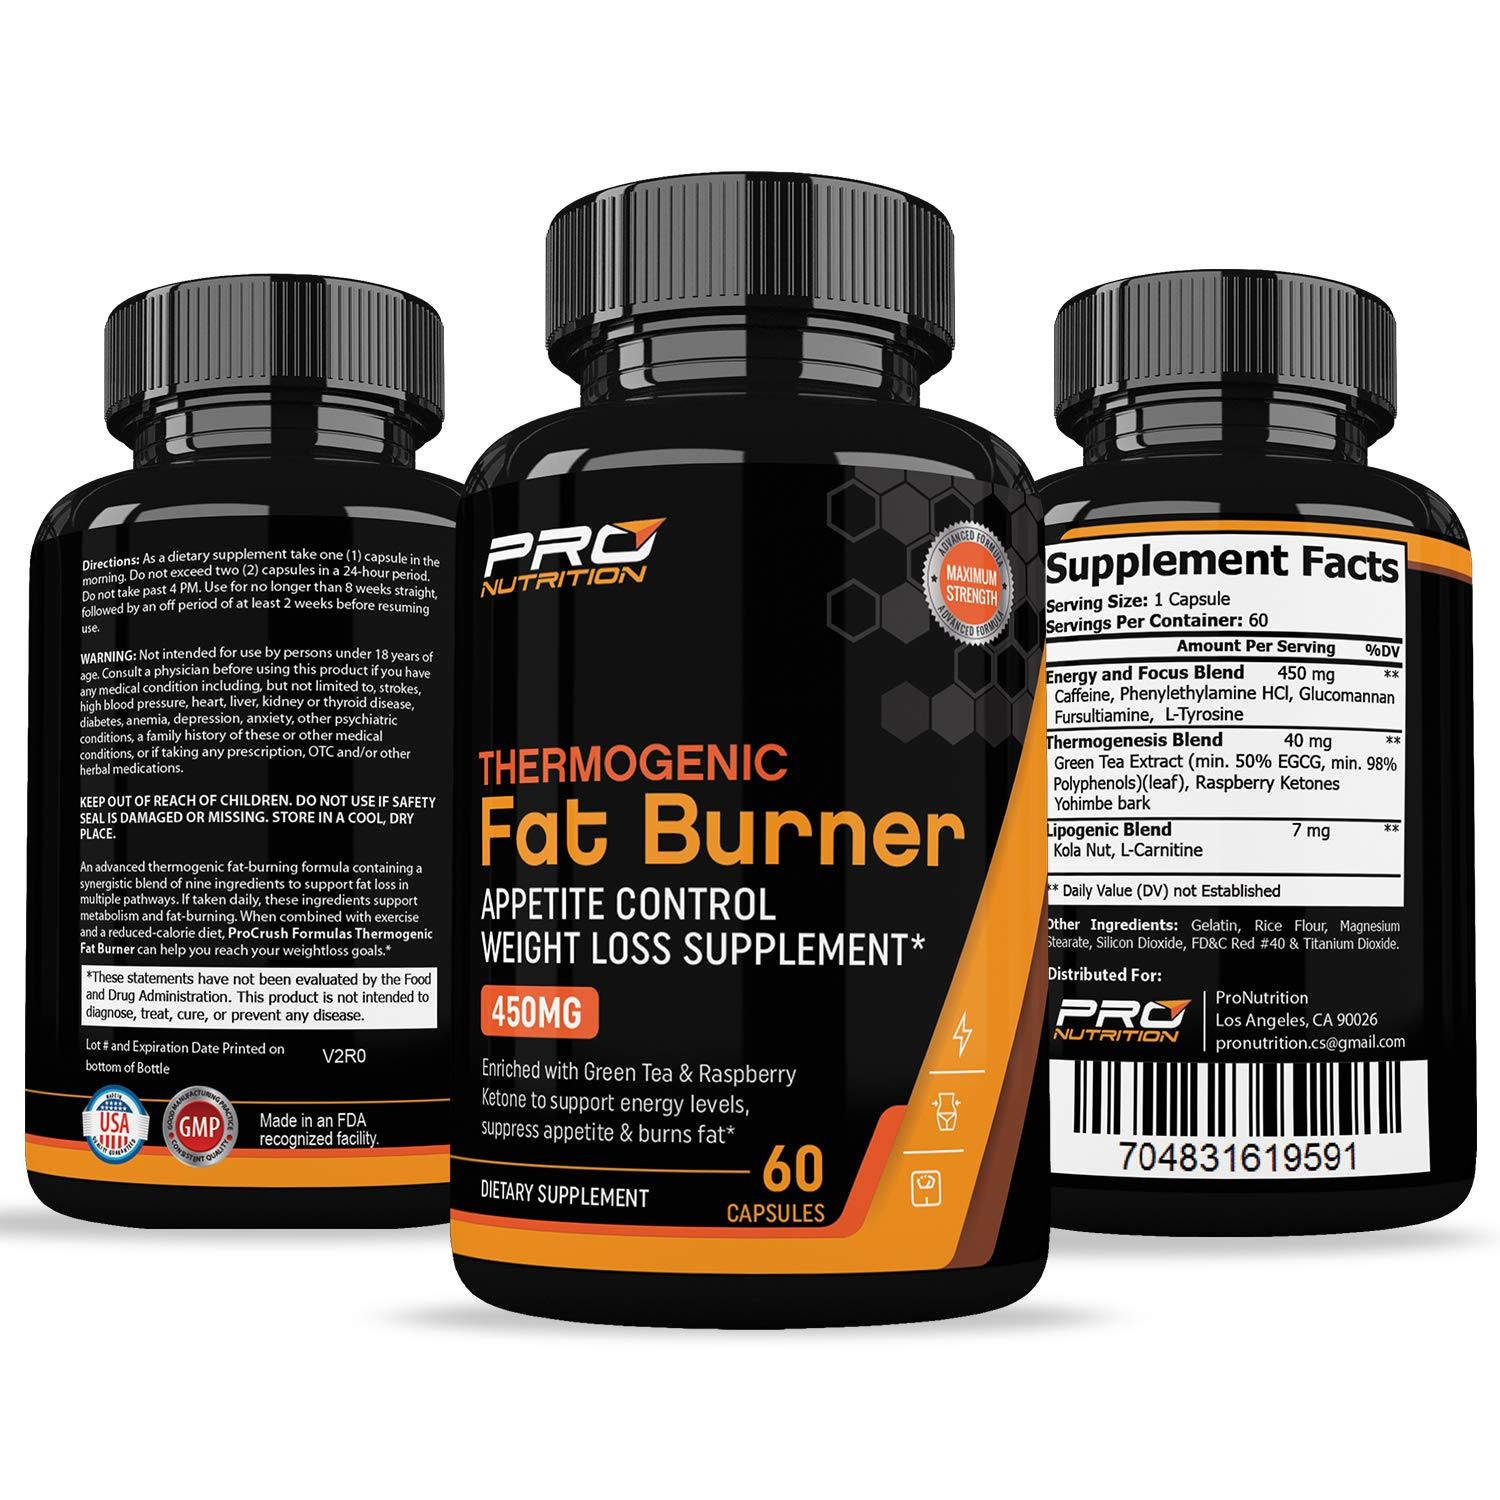 Thermogenic Fat Burner Appetite Control Weight Loss Supplement Revolutionary Formula That Increases Metabolism Burns Fat. Superior Appetite Suppressant Increases Energy for Men Women